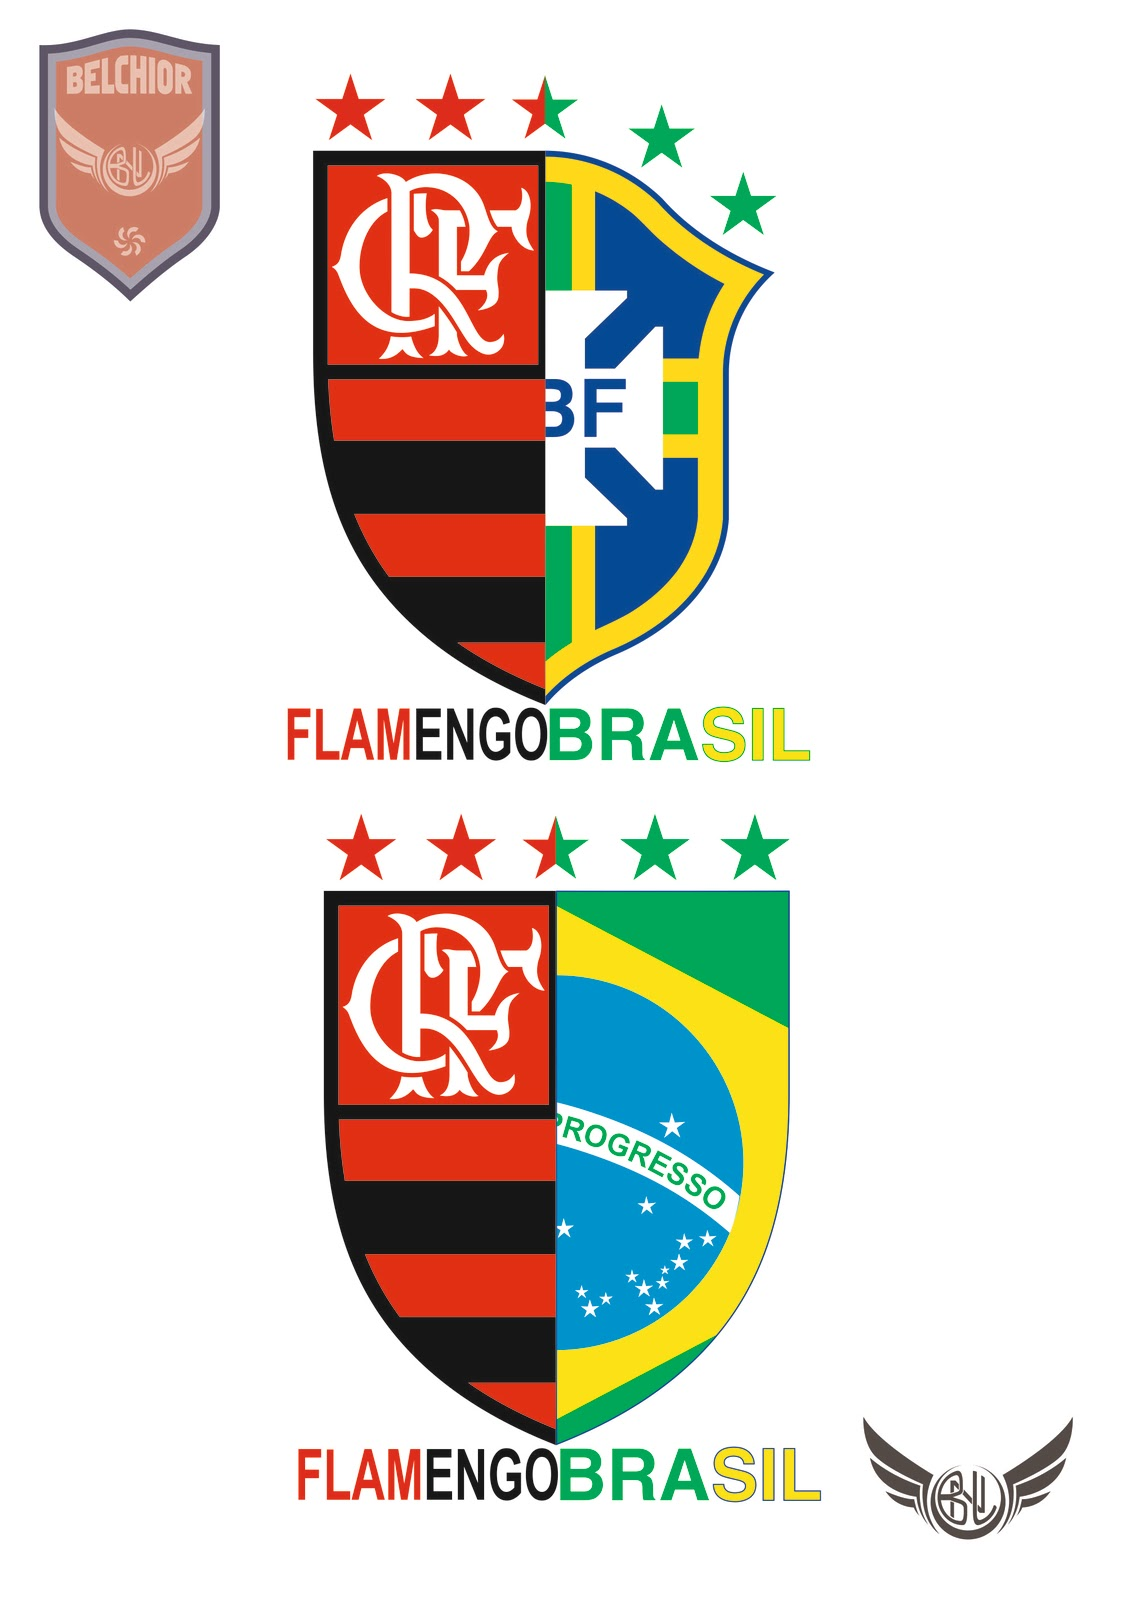 Flamengo Vs Corinthians Prediction And Valuable Information You Will Need Before To Place A Bet On This Match